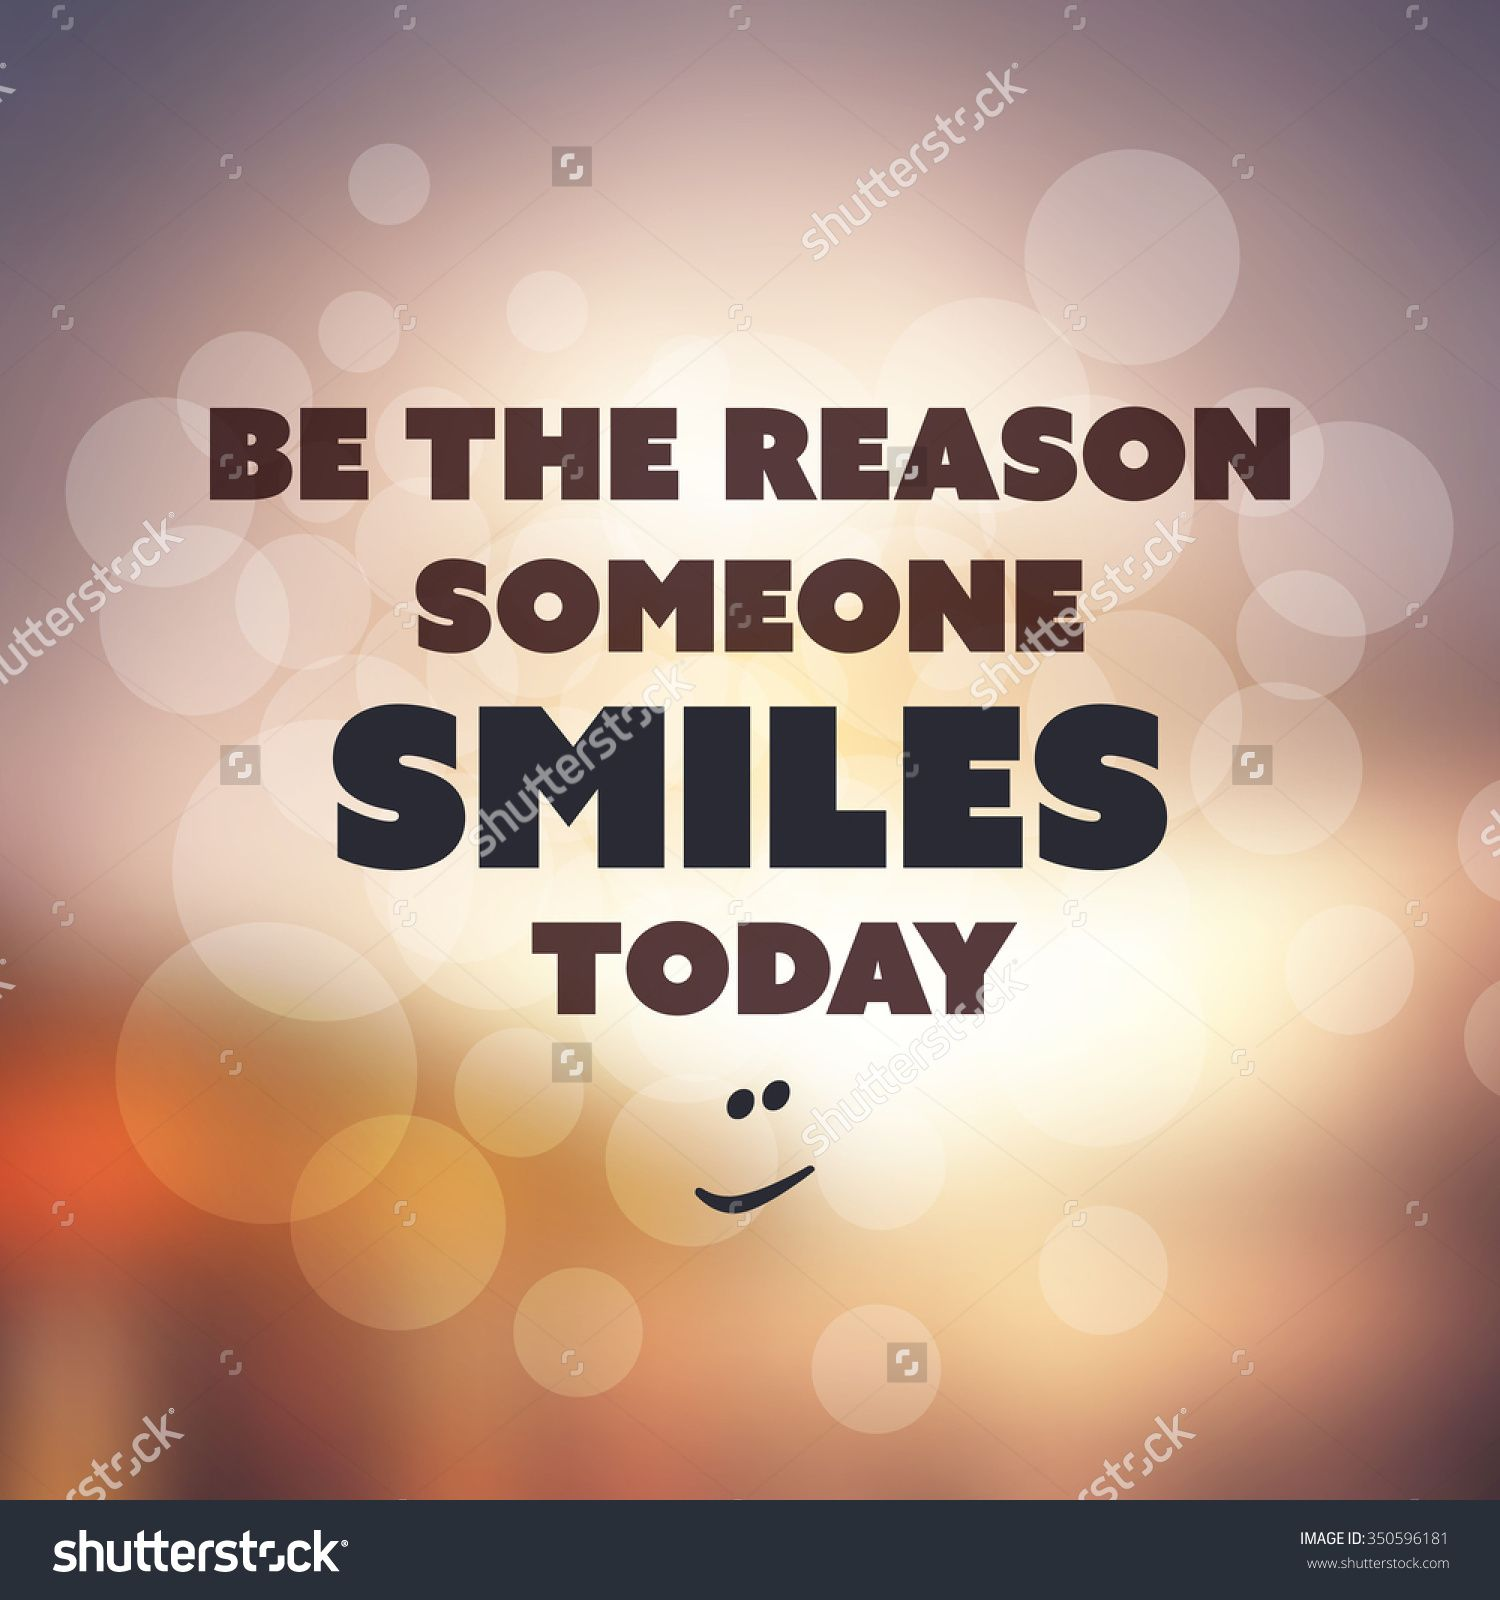 Image result for be the reason someone smiles today | Quotes | Pinterest